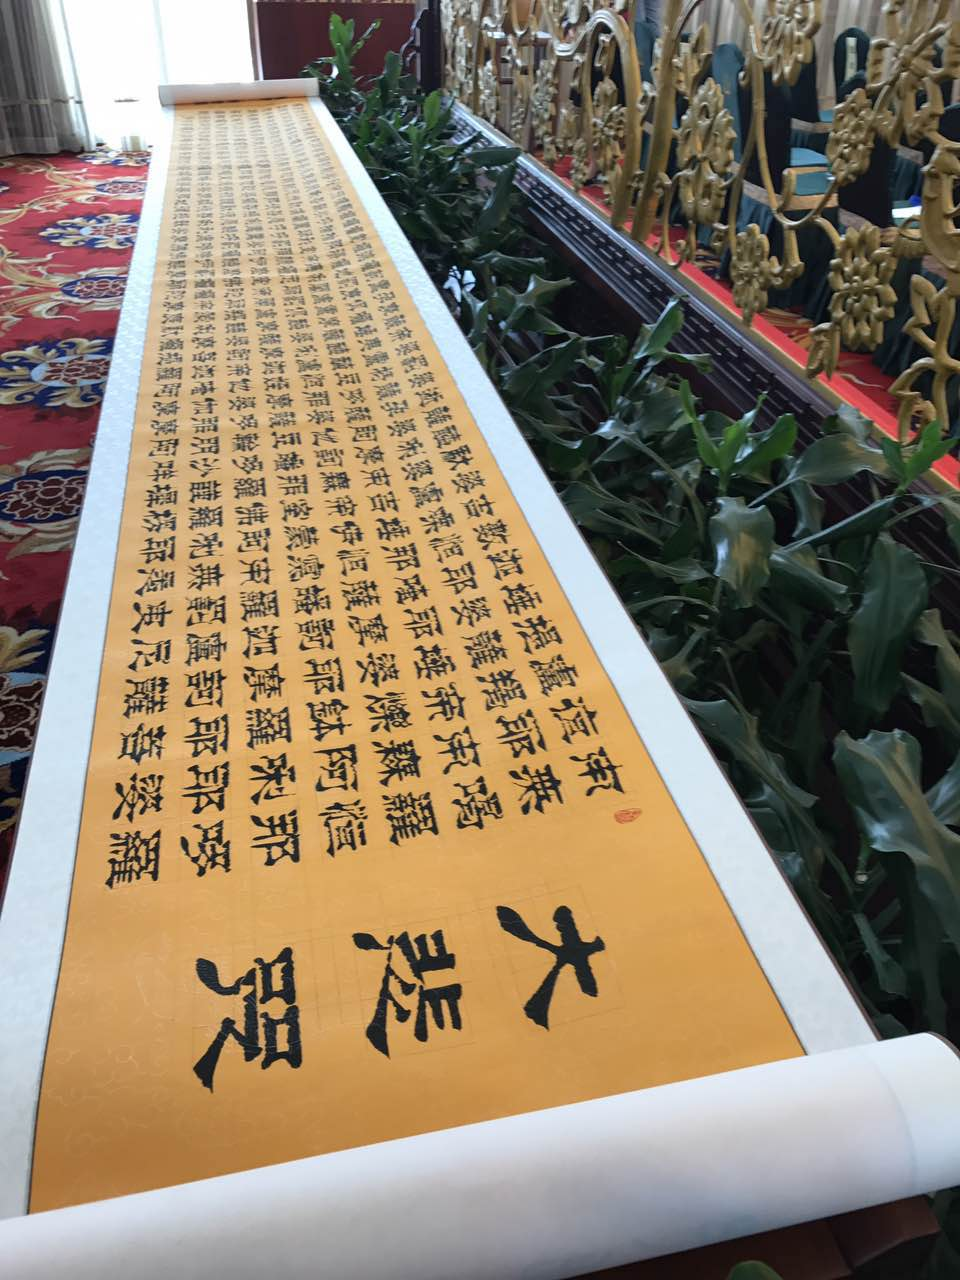 Calligraphy work donated by Zhang Jinjing to Beijing Intangible Cultural Heritage Development